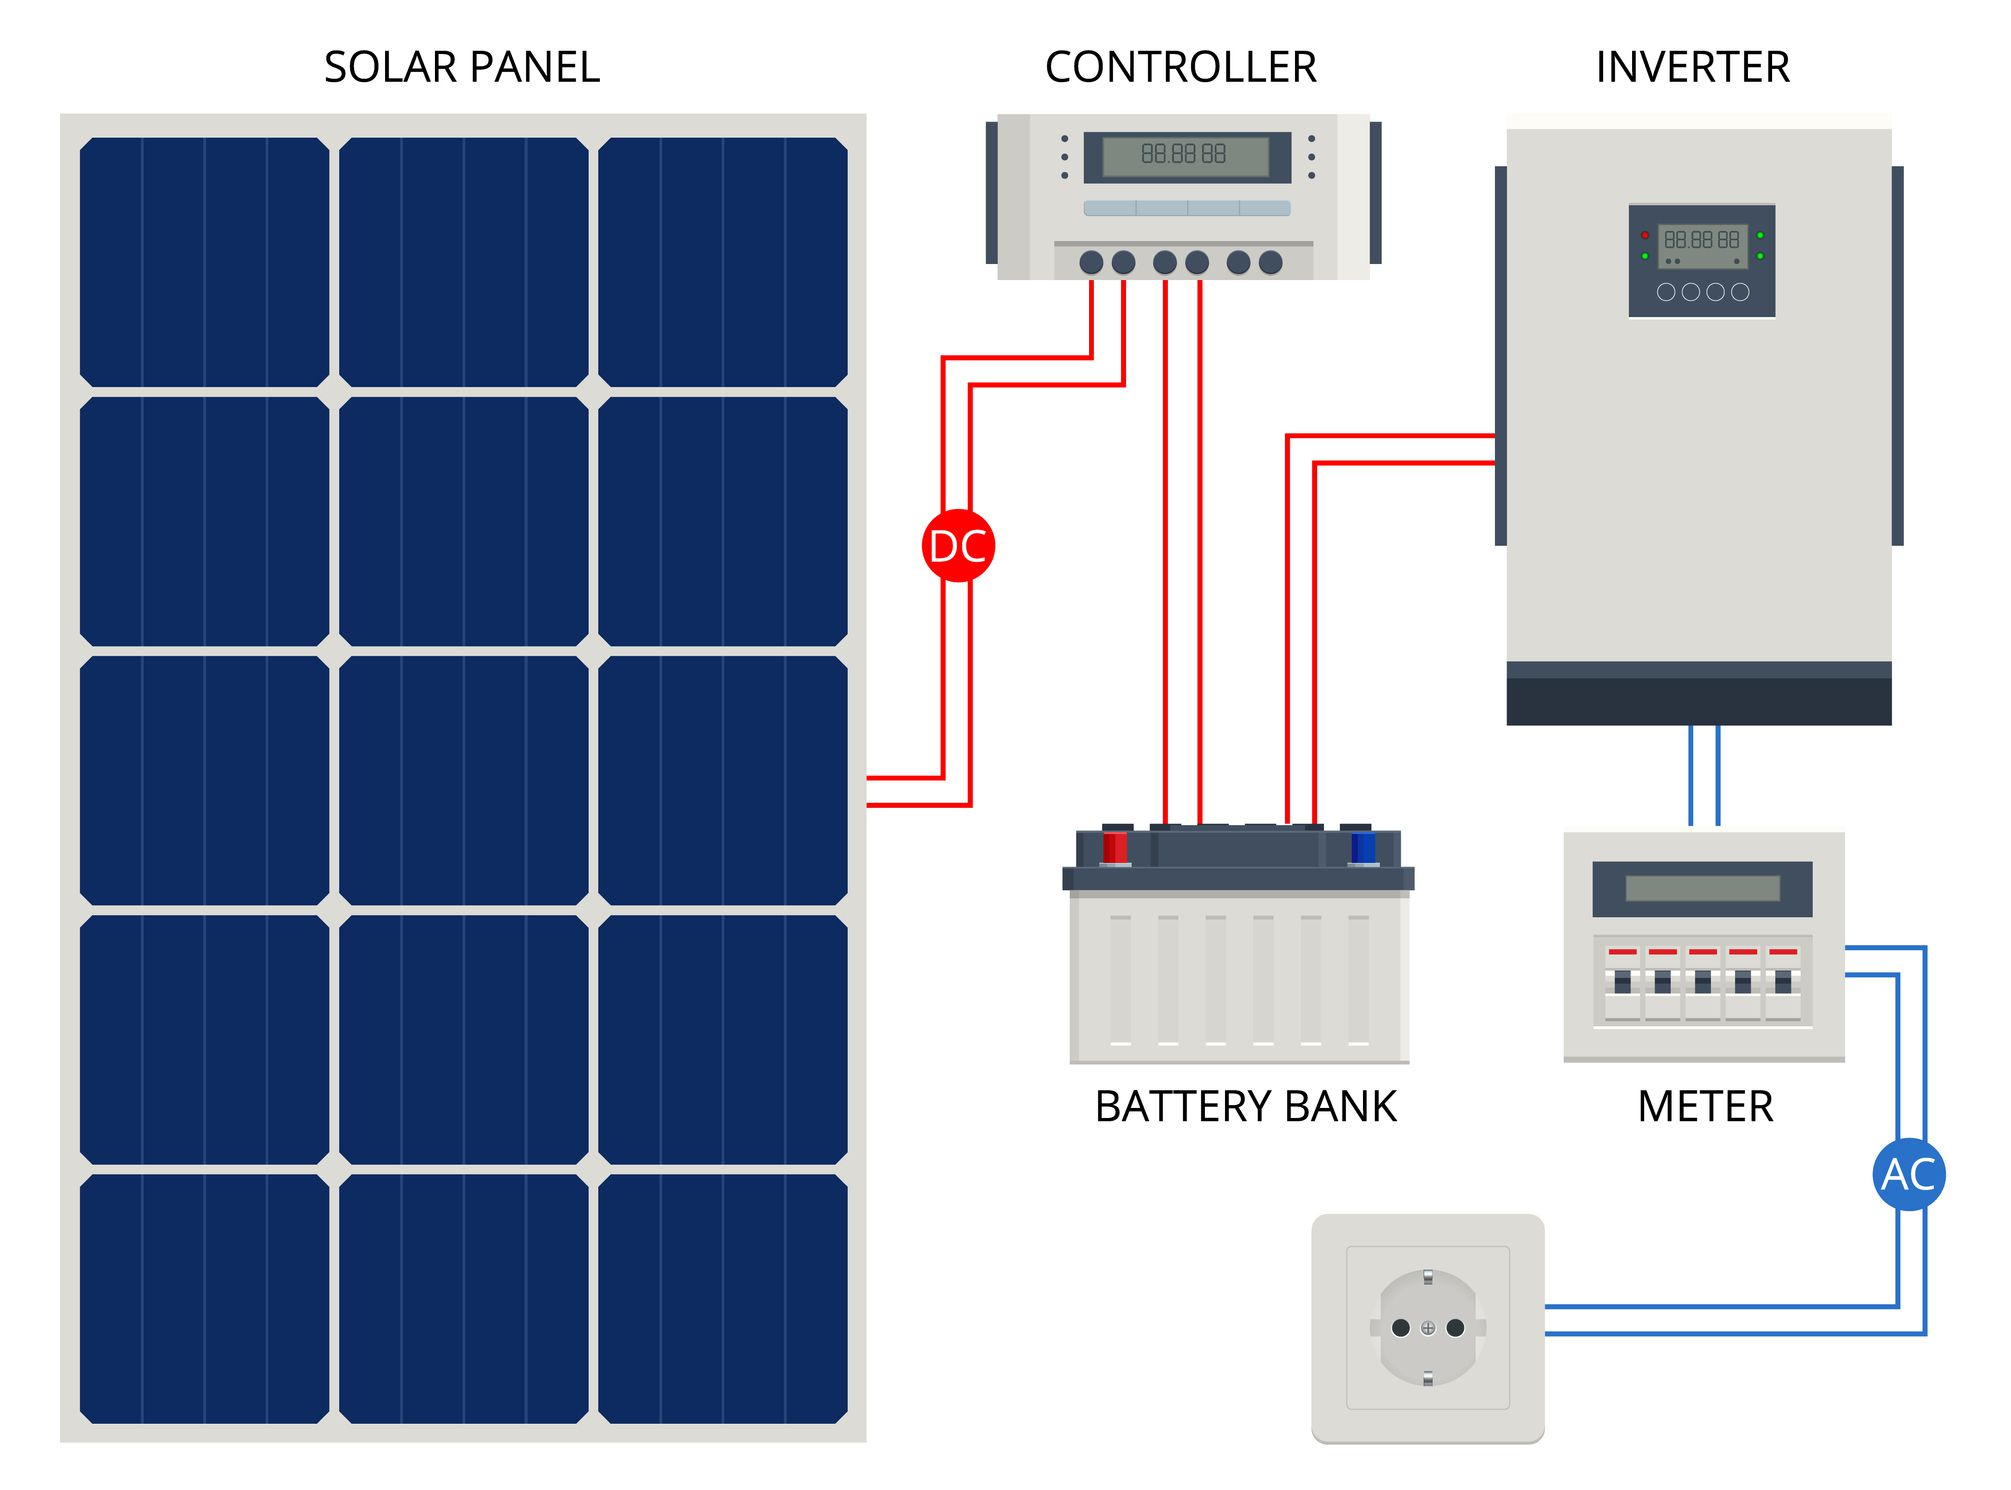 Diagram of a solar panel system with battery backup.